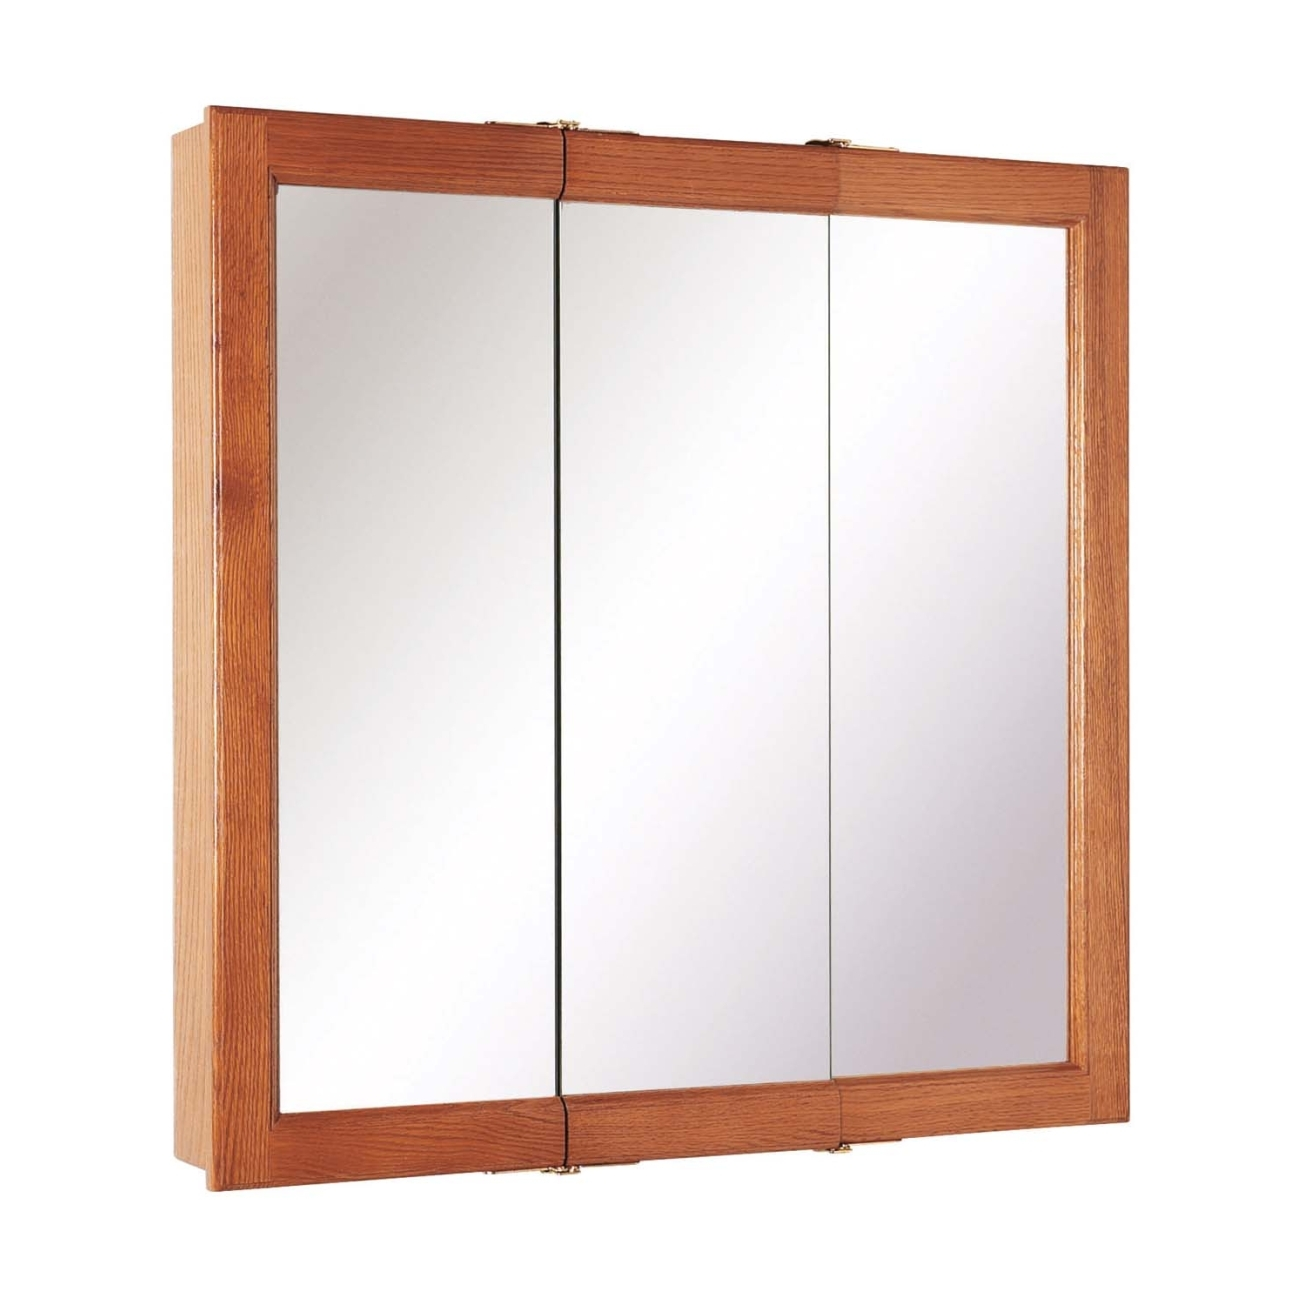 Replacement Glass Doors For Bathroom Cabinetreplace medicine cabinet door creative cabinets decoration